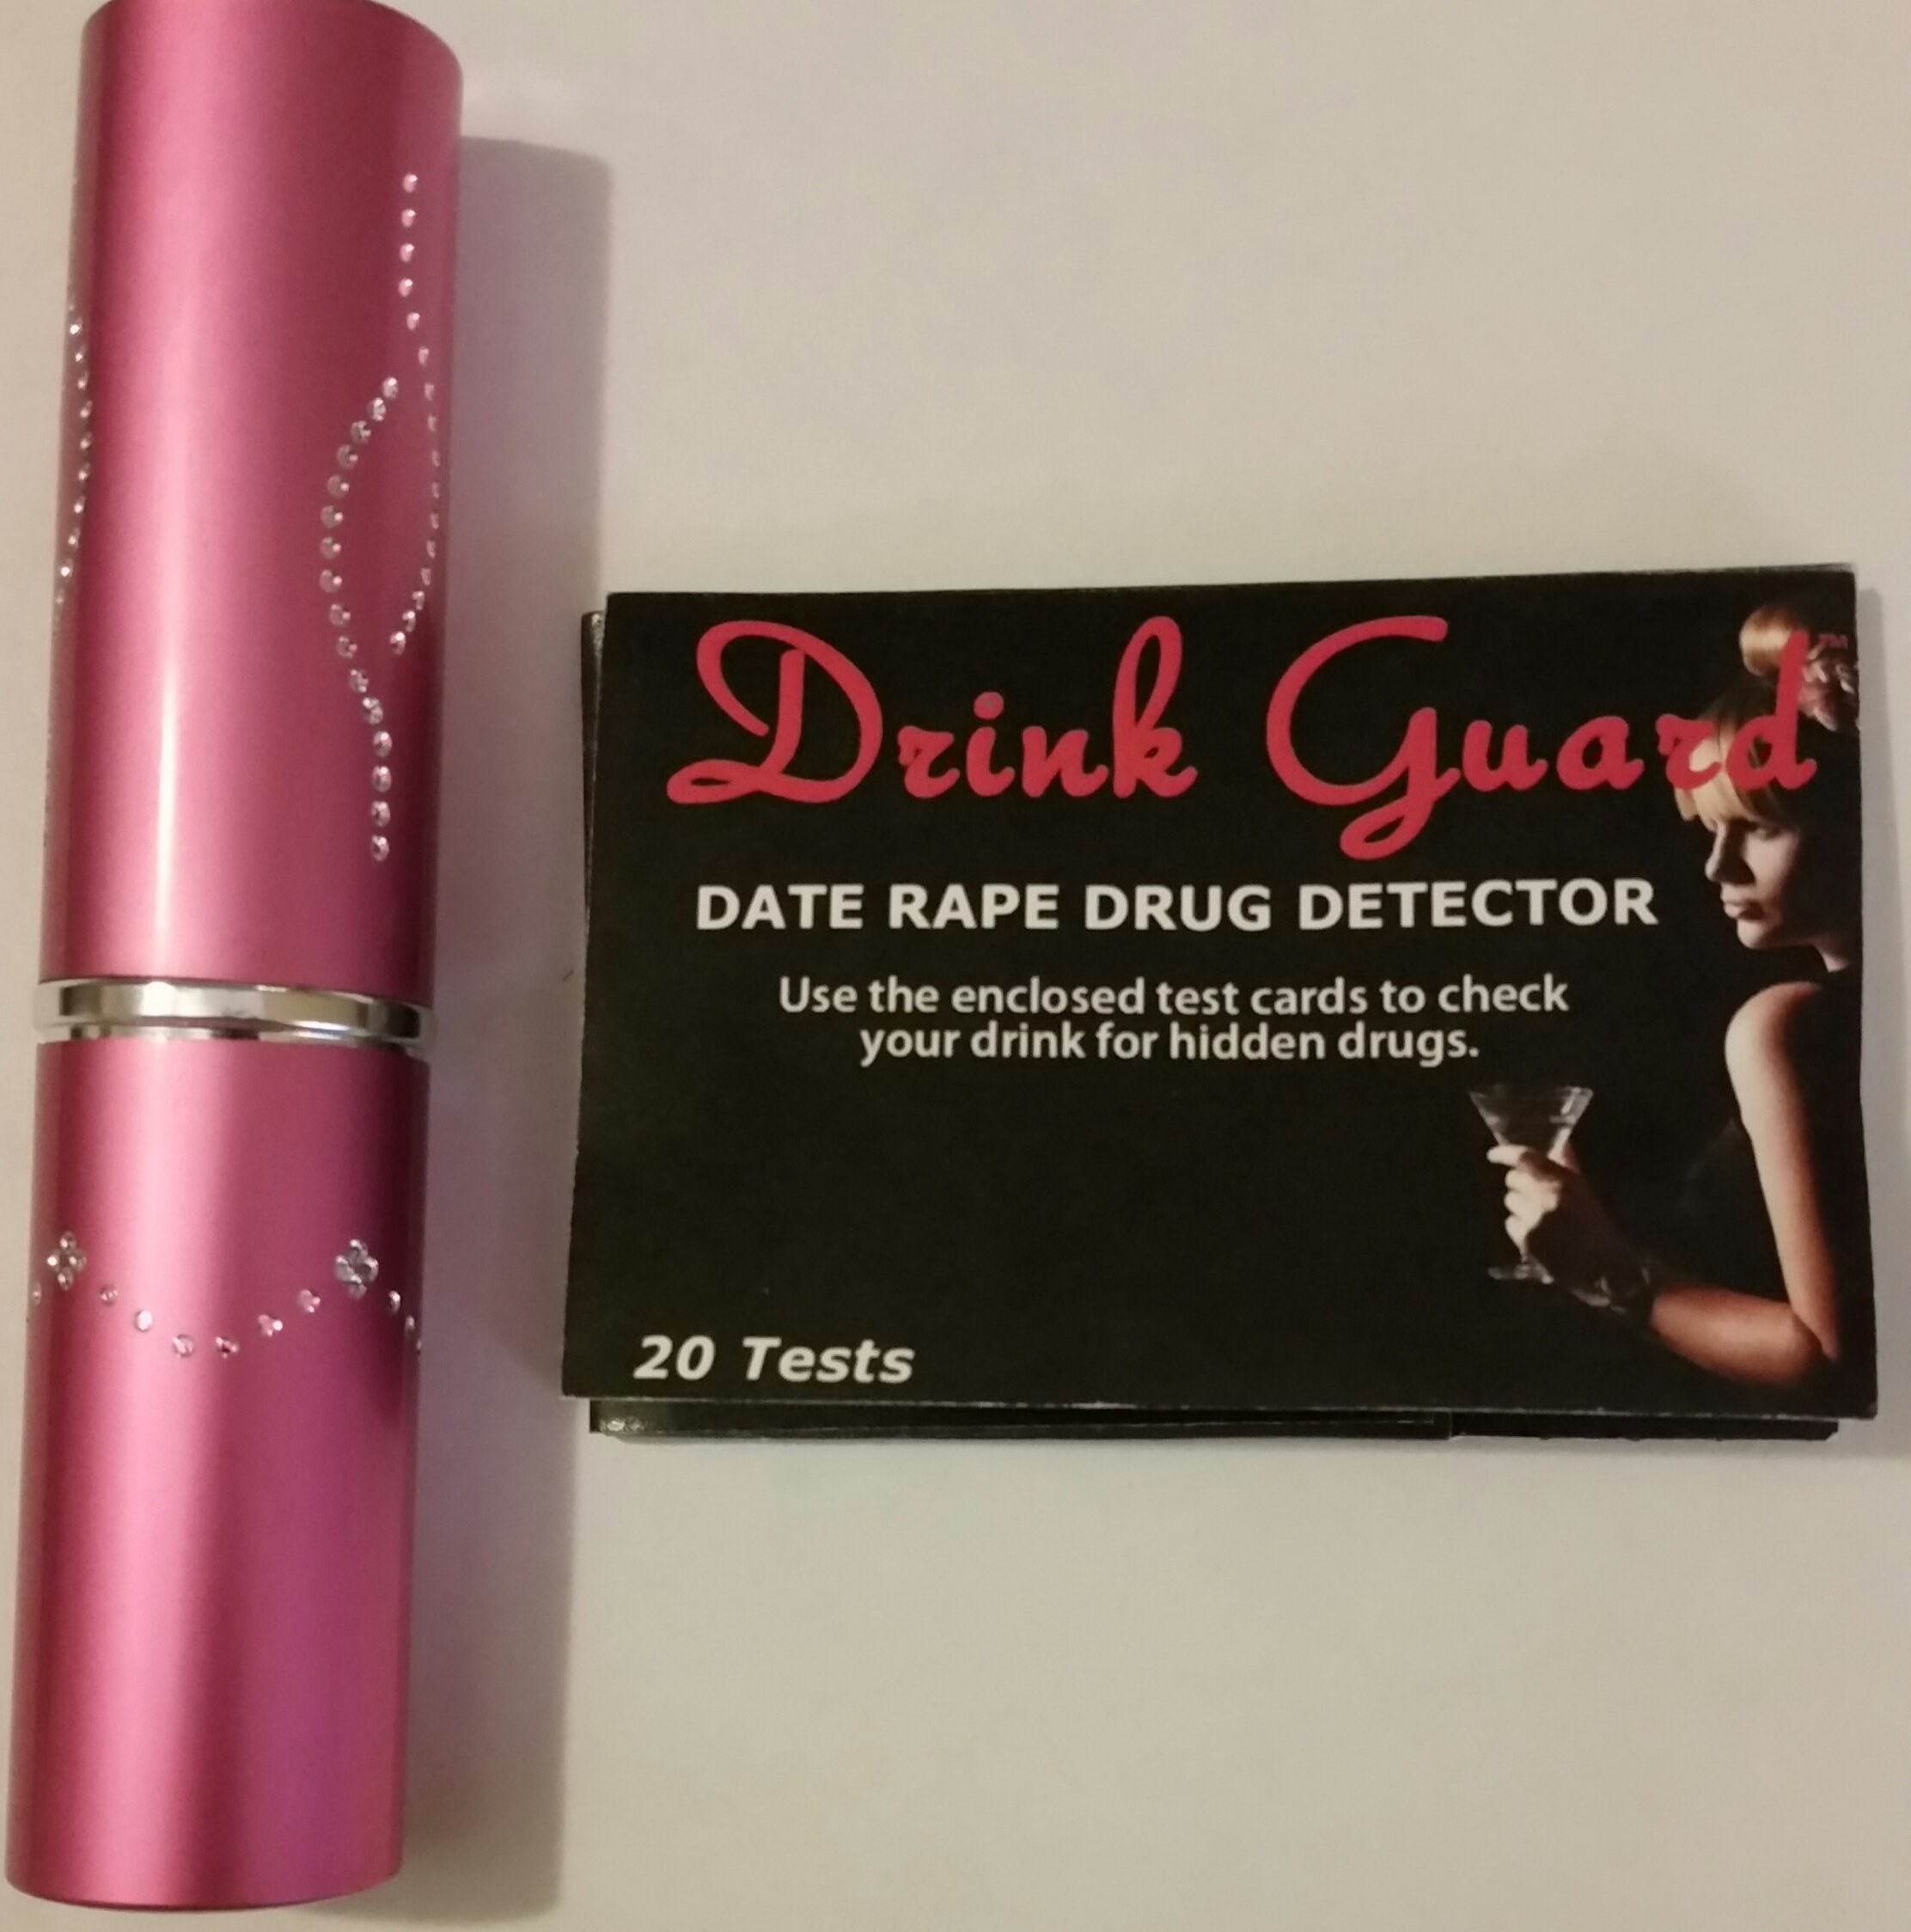 Personal Safety 3 Million Volt Pink Lipstick Stun Gun With Drug Detector Test Cards